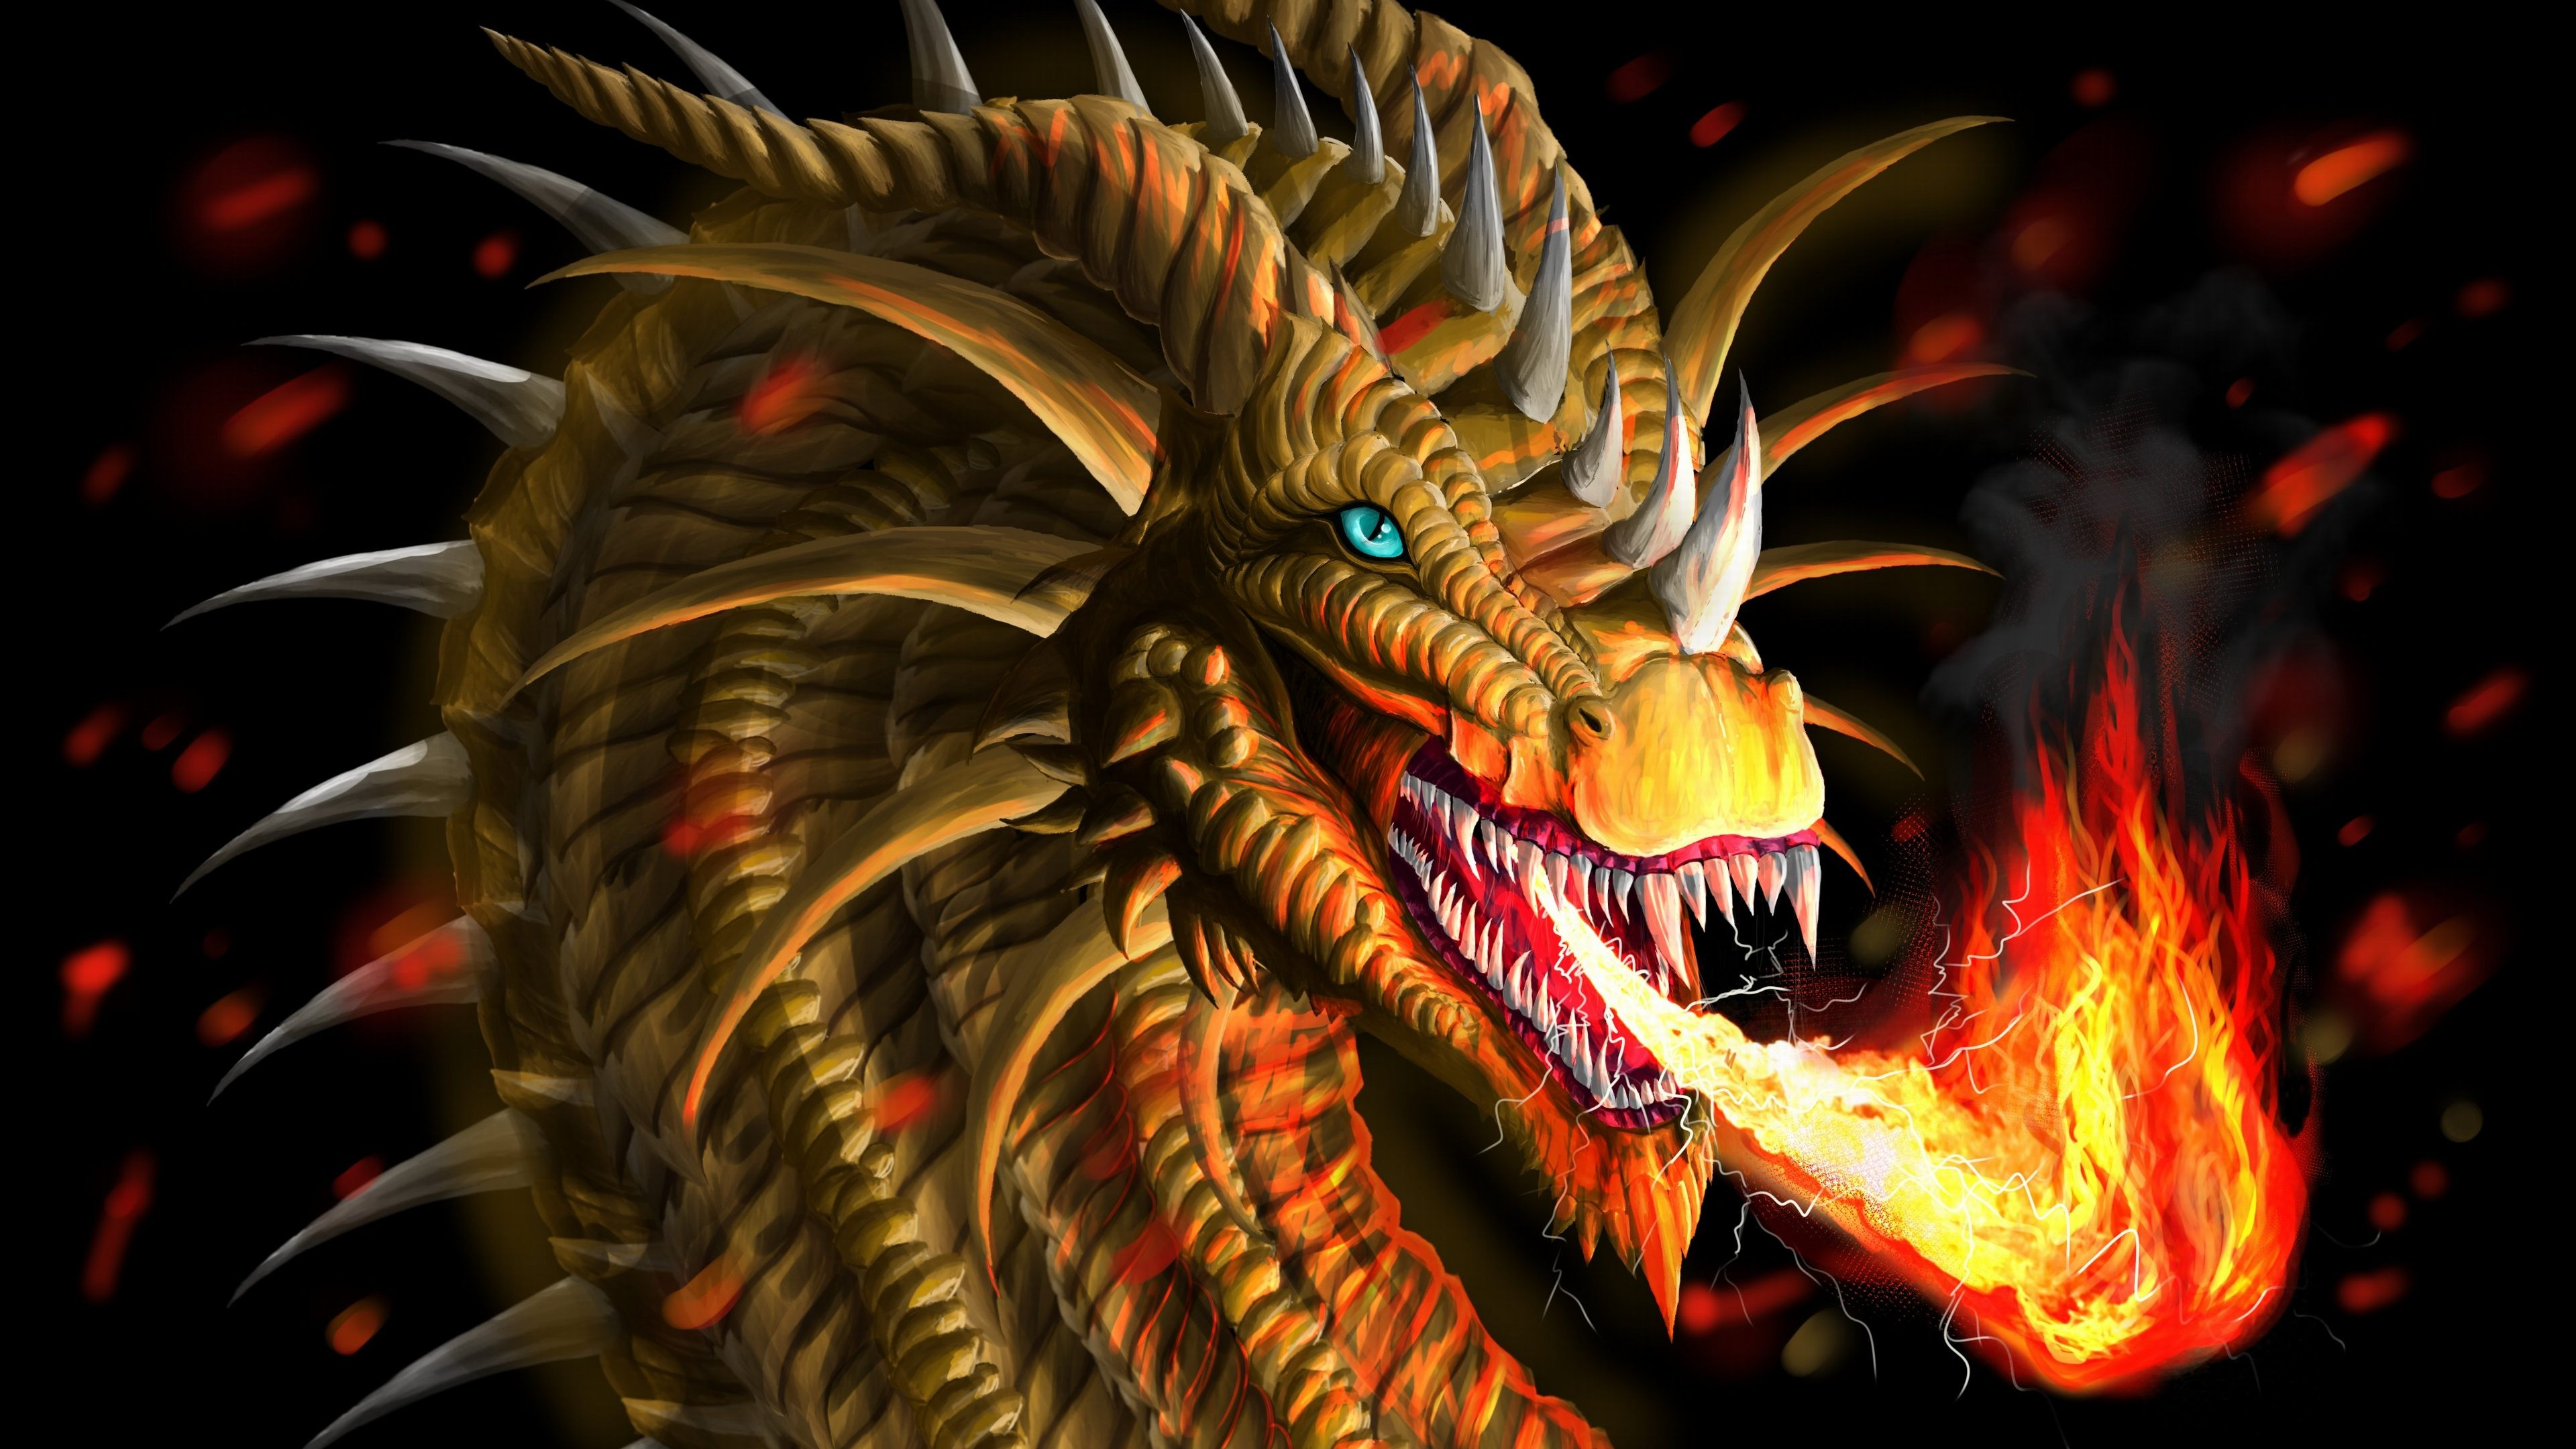 47 dragon wallpapers download free amazing full hd wallpapers for desktop mobile laptop in - Dragon wallpaper 3d ...